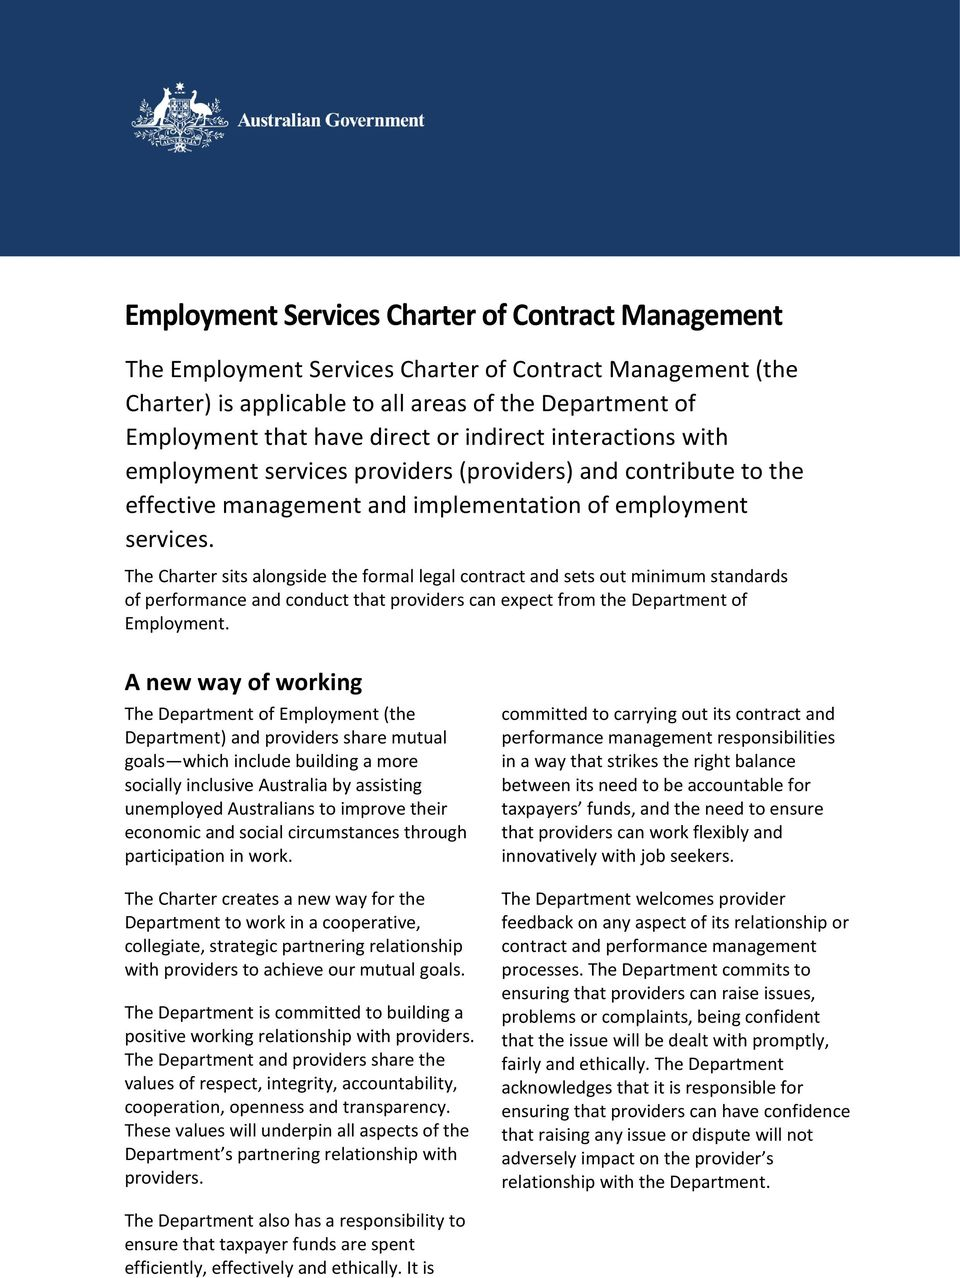 The Charter sits alongside the formal legal contract and sets out minimum standards of performance and conduct that providers can expect from the Department of Employment.